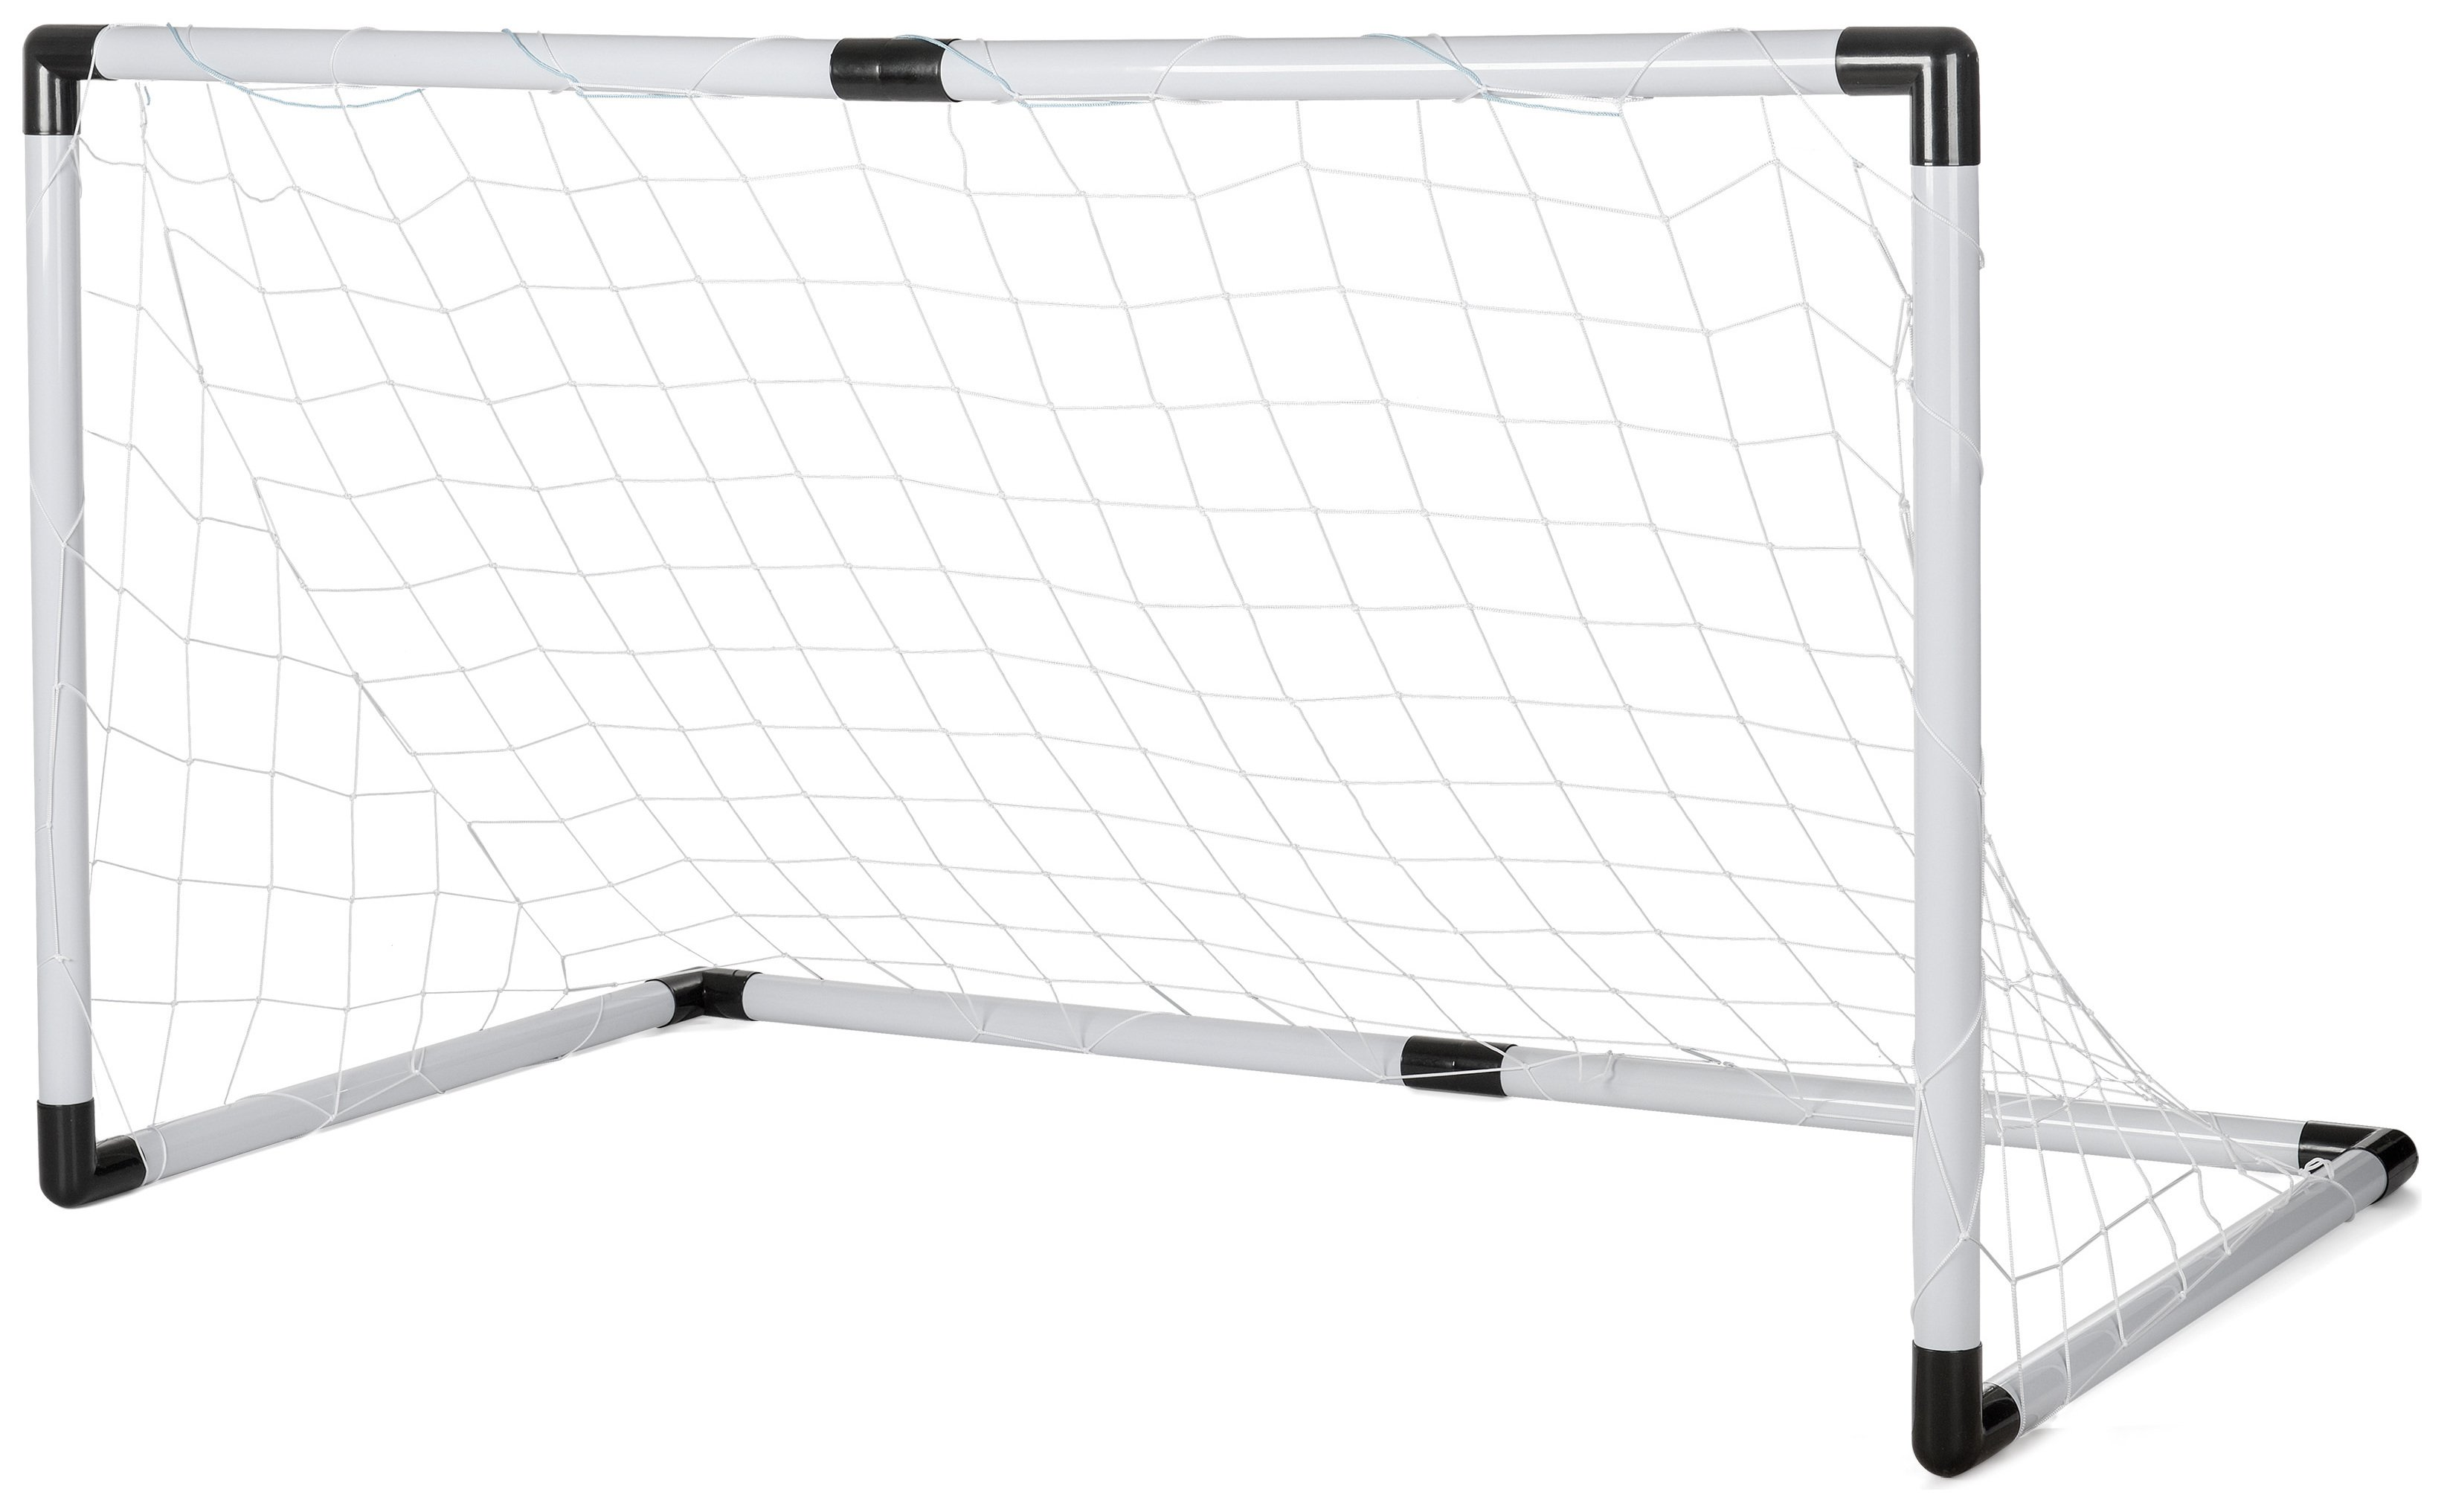 Image of 2 in 1 Football Goal.